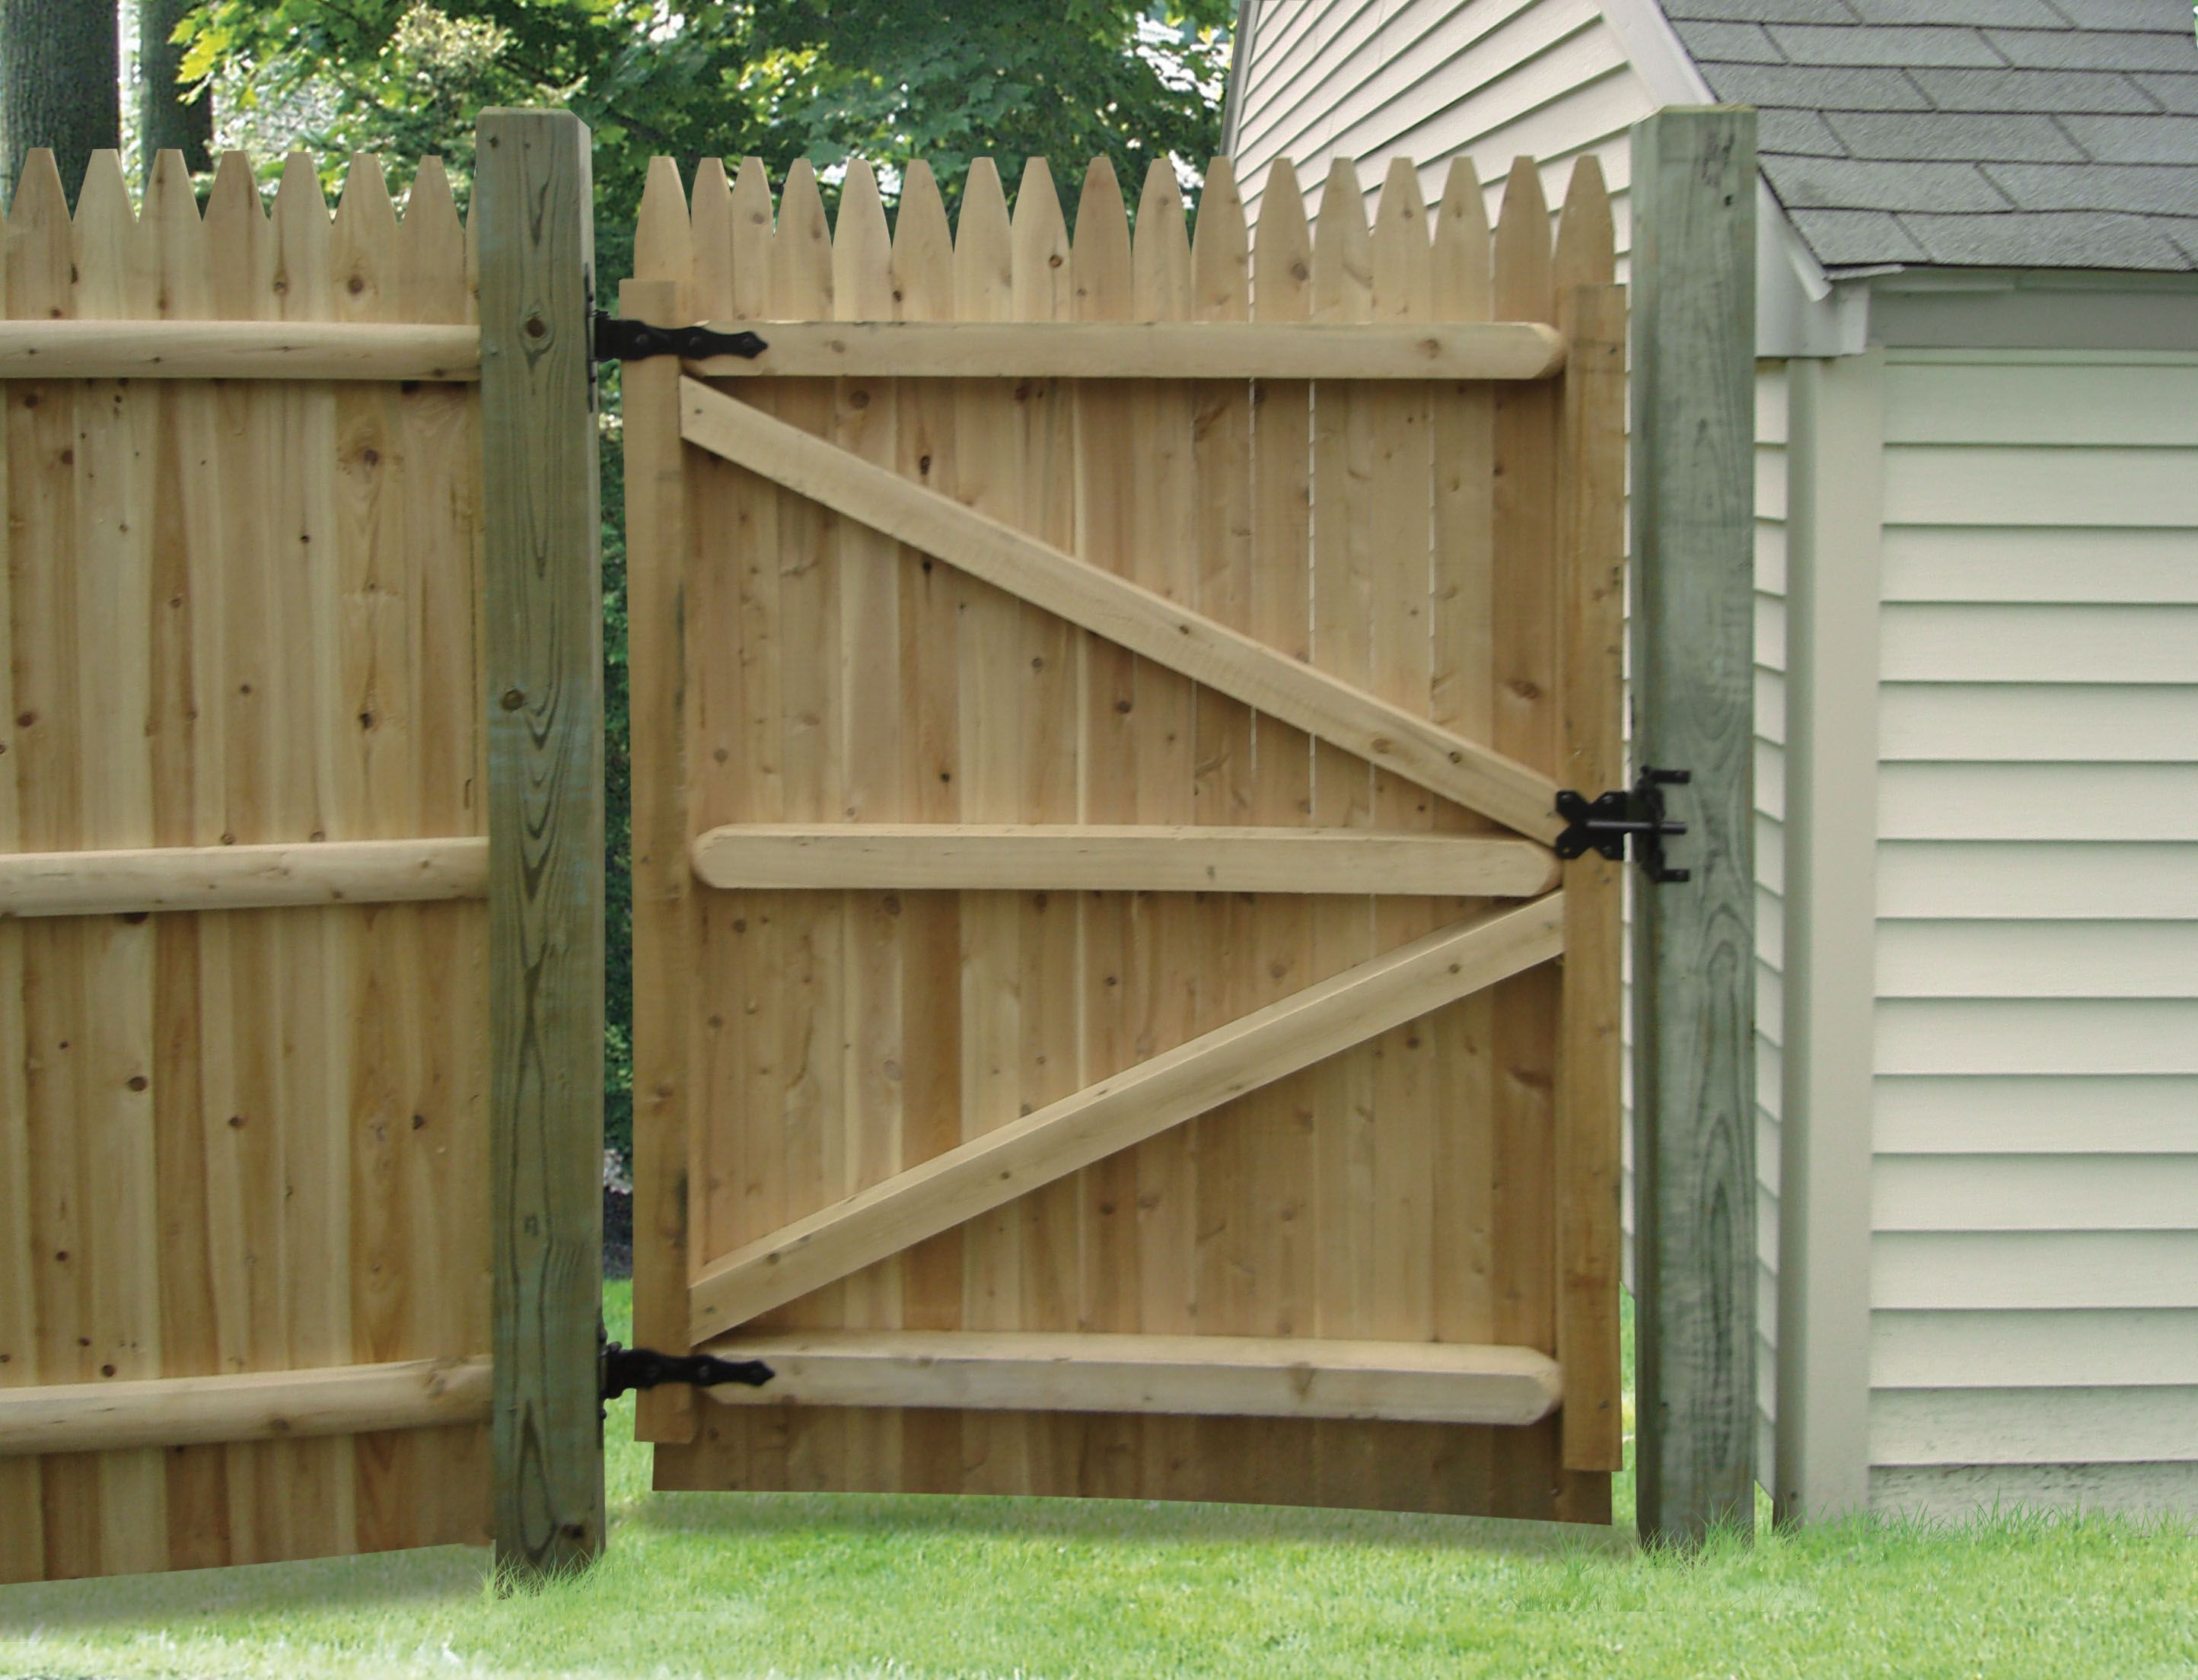 Wooden fence gates designs wood fence doors interior for Diy fence gate designs